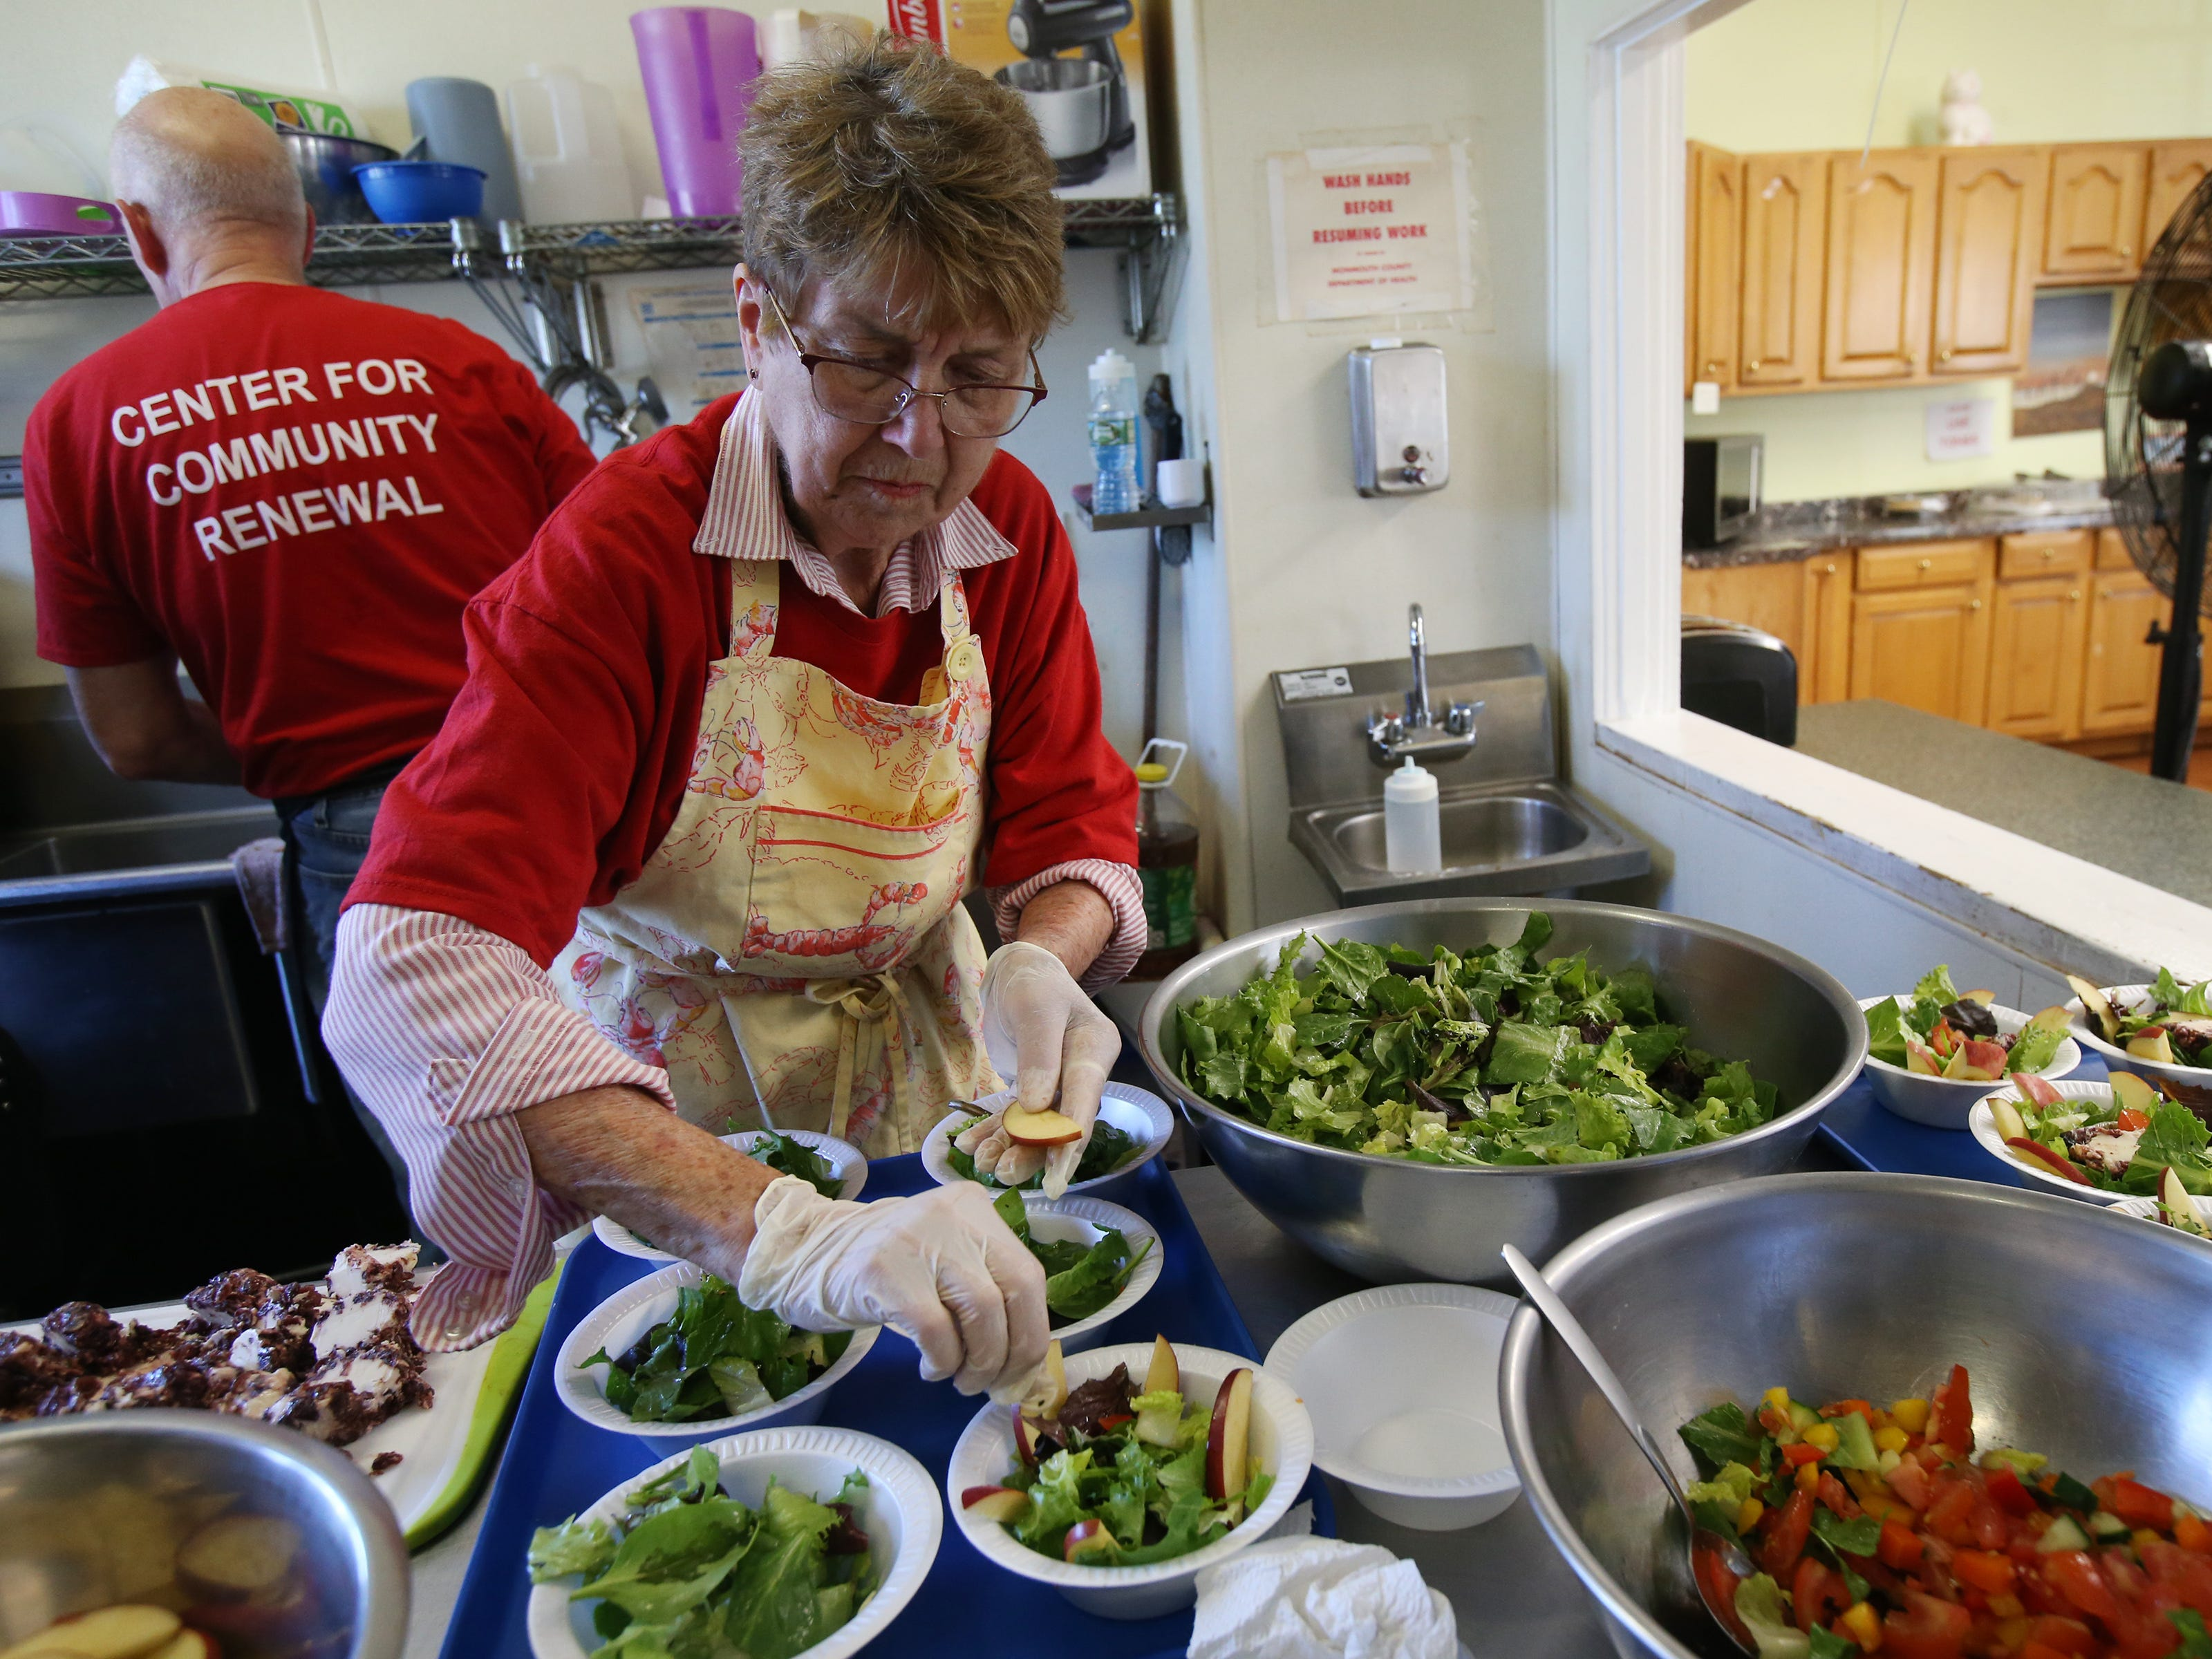 Pam Carlsen of Port Monmouth, a volunteer, prepares salads for at St. Mark's soup kitchen at St. Mark's Episcopal Church in Keansburg, NJ Tuesday, April 23, 2019.